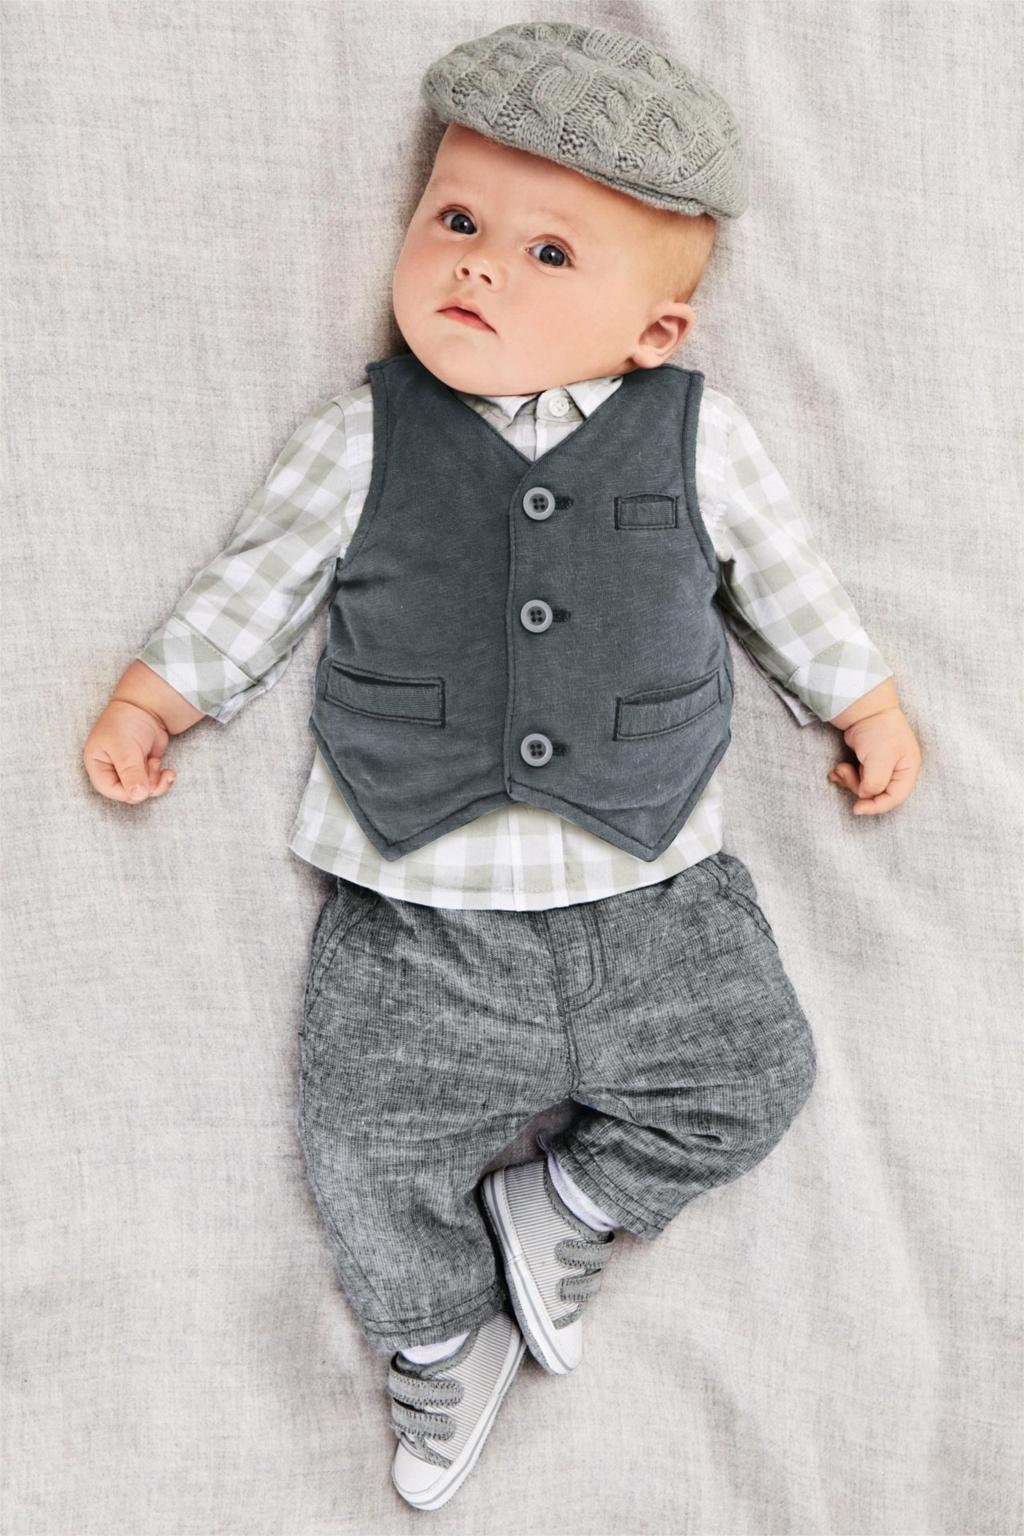 Baby Boy Dress Clothes | Beauty Clothes